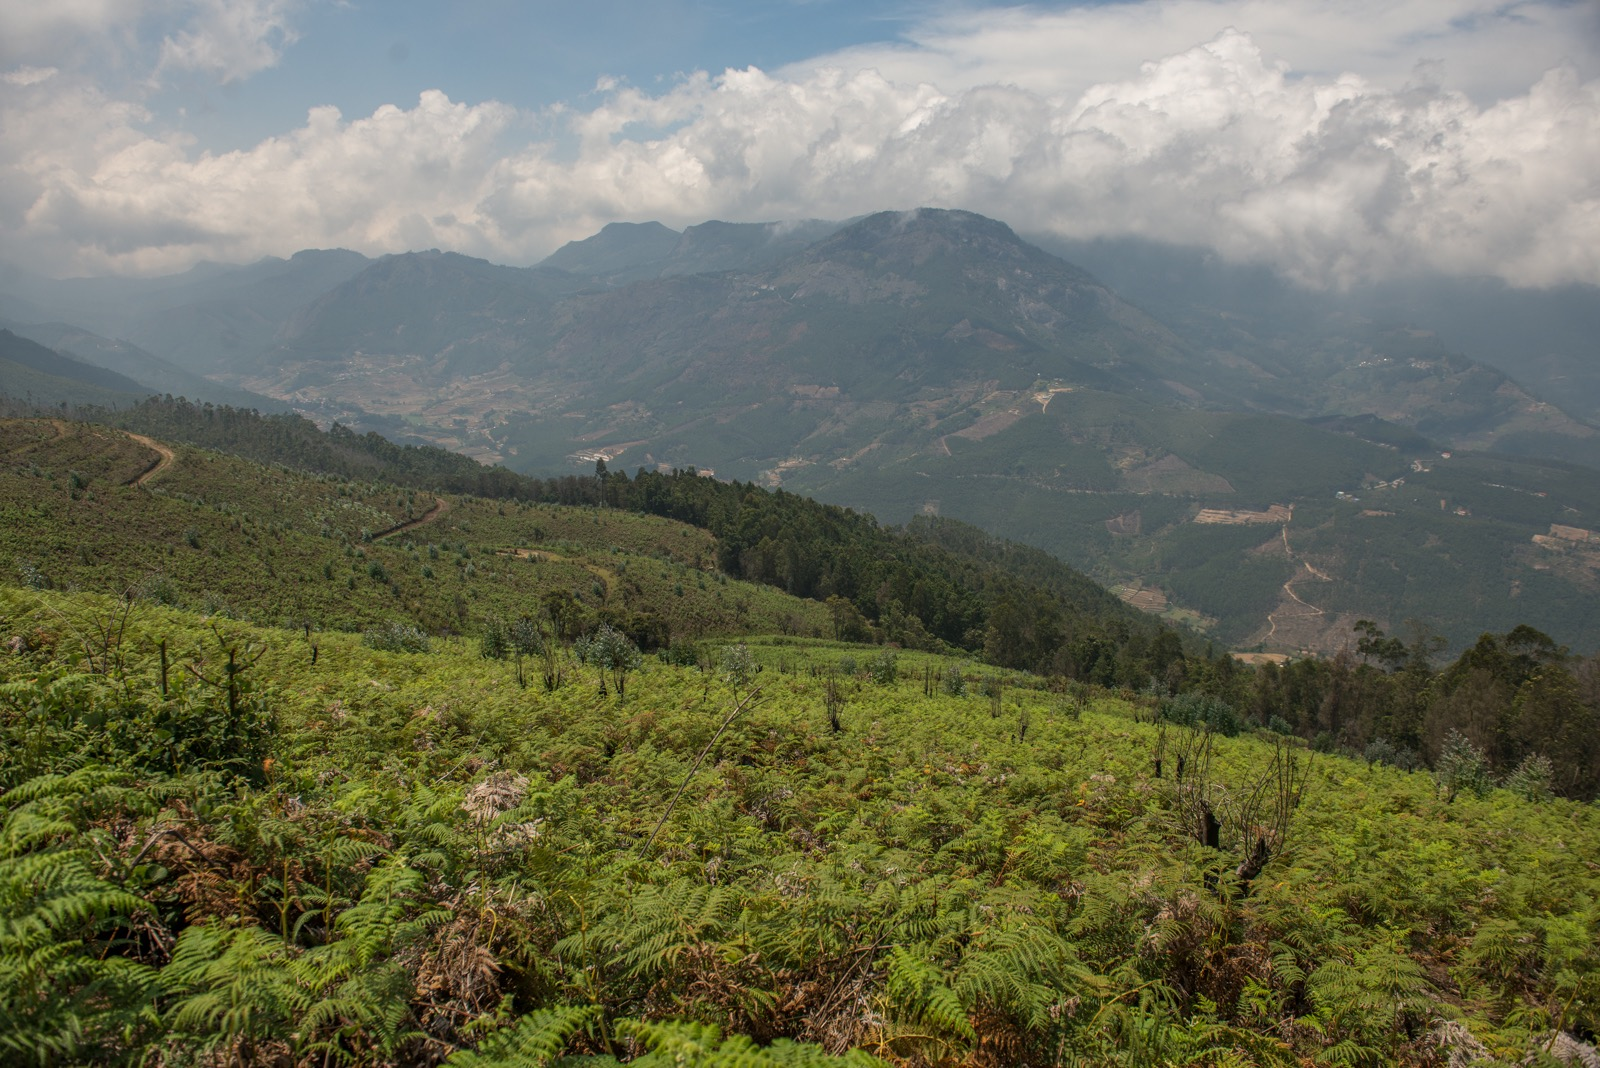 Weeds take over a cleared plantation at Kurinjimala restoration site (Munnar landscape, Kerala). Credit: Prasenjeet Yadav